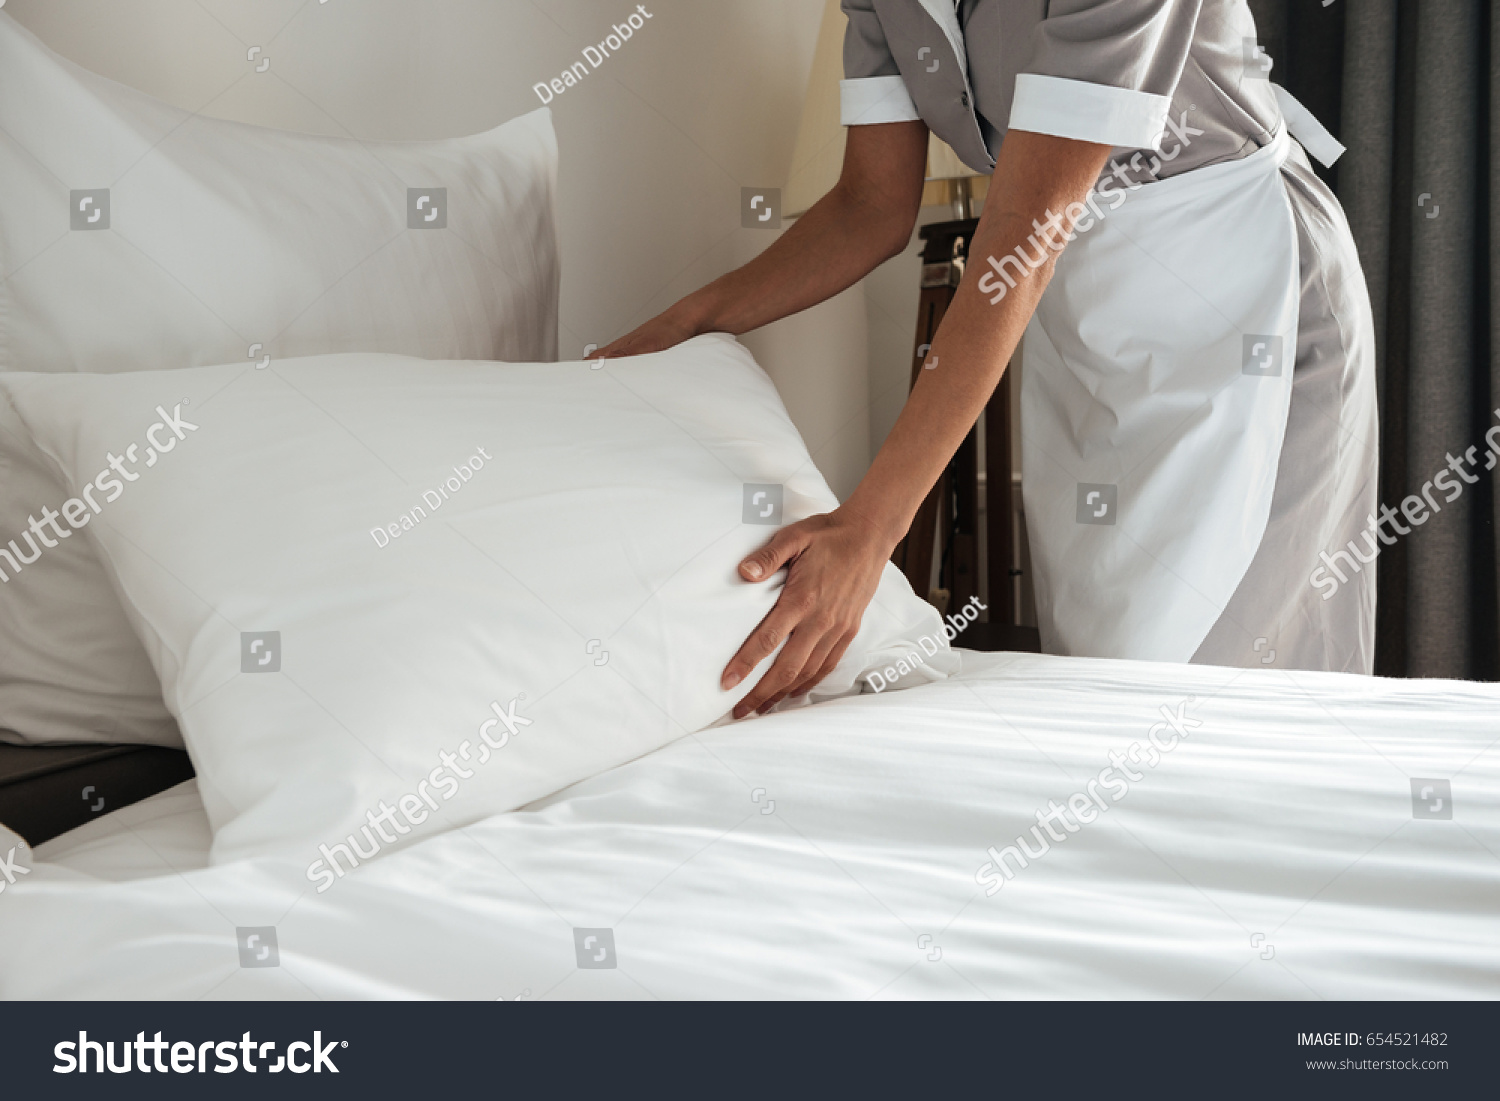 Cropped image of a female chambermaid making bed in hotel room #654521482